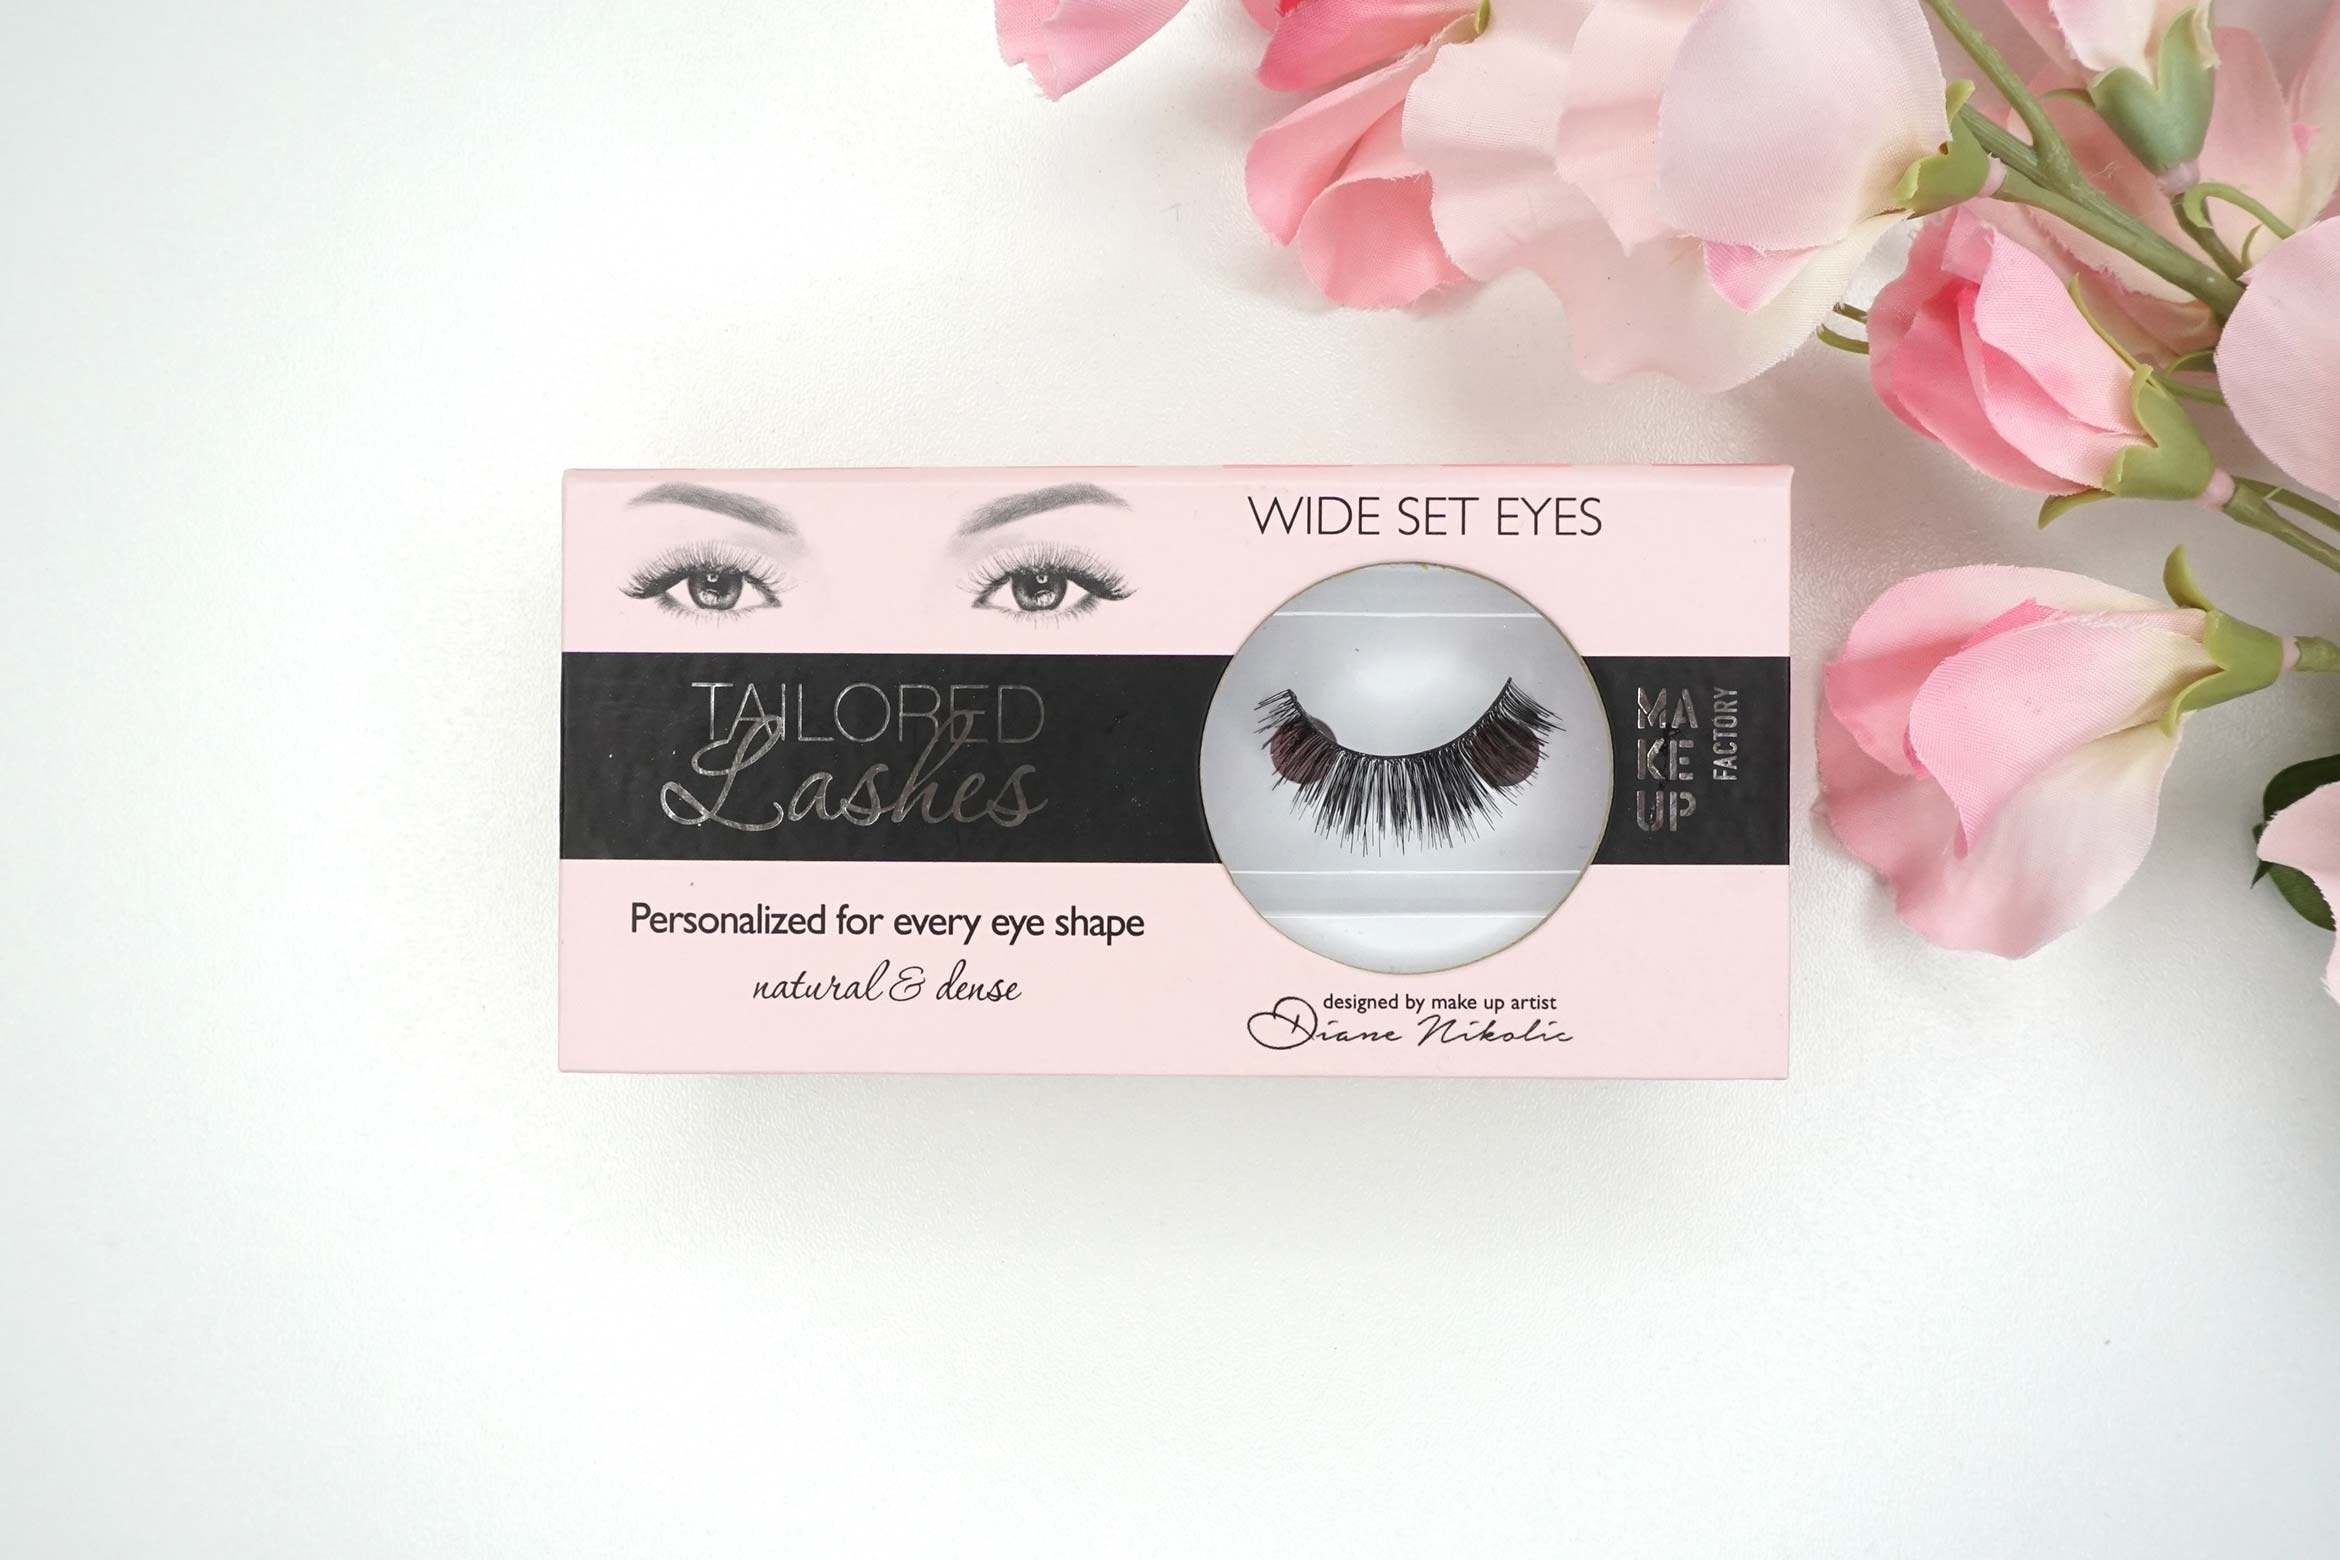 make-up-factory-tailored-lashes-review-wide-eyes